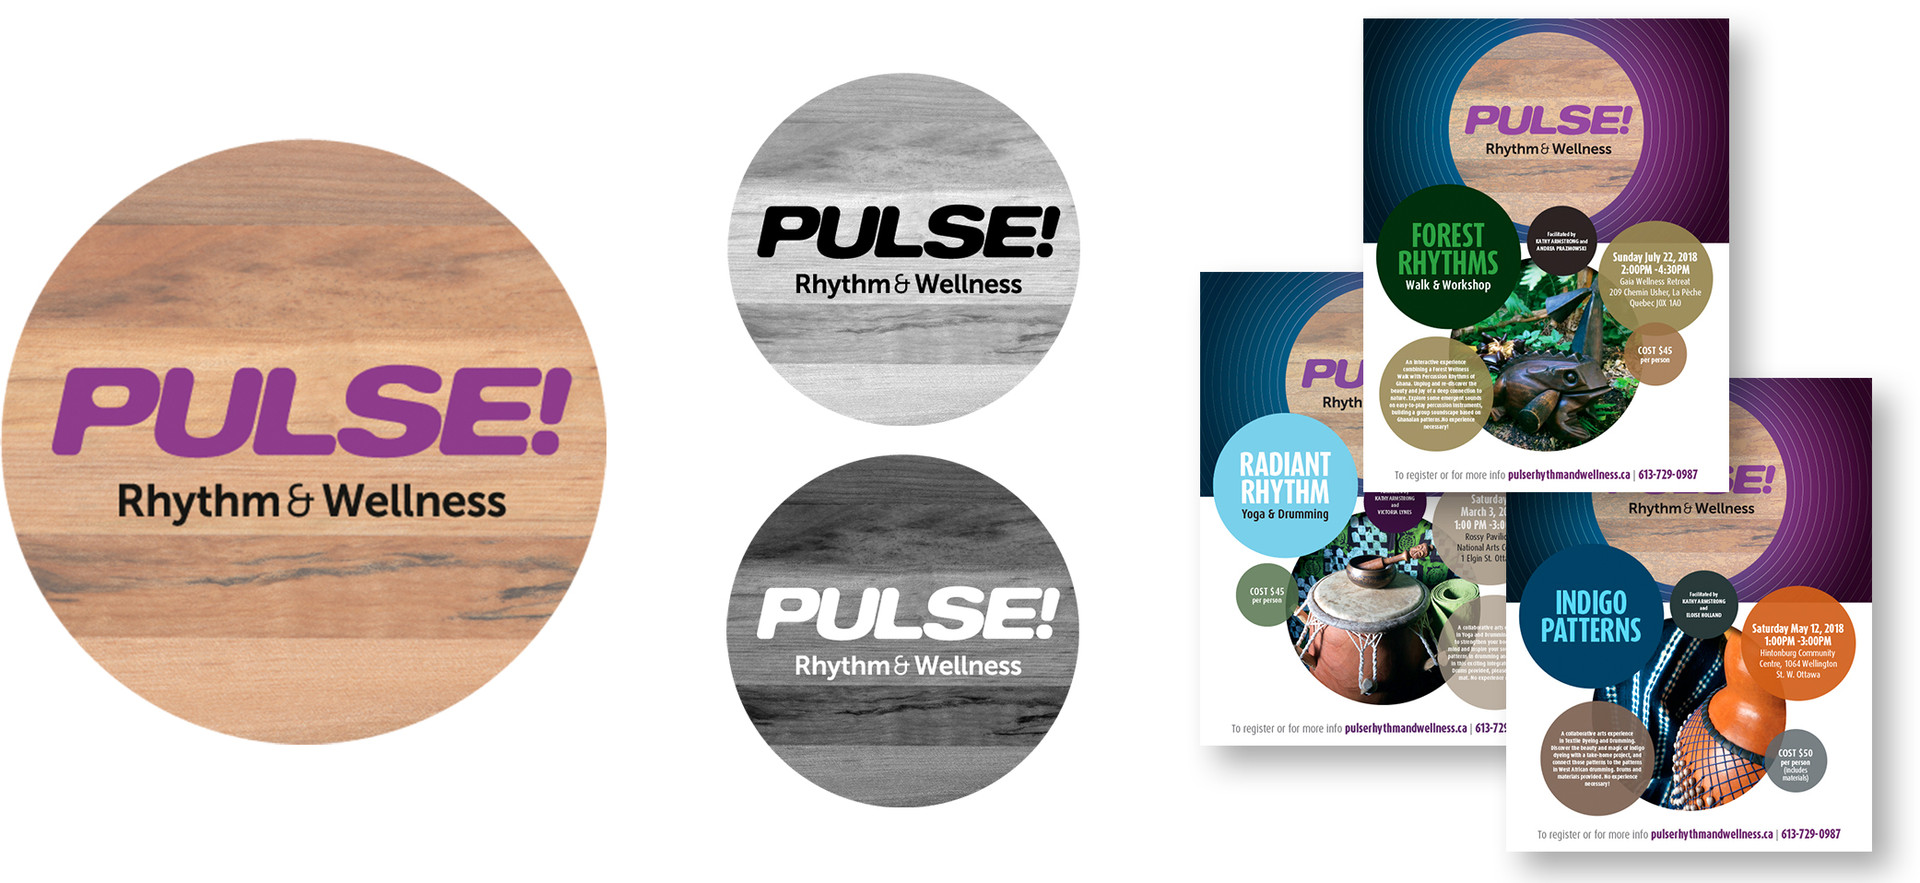 Pulse! | Rhythm & Wellness brand